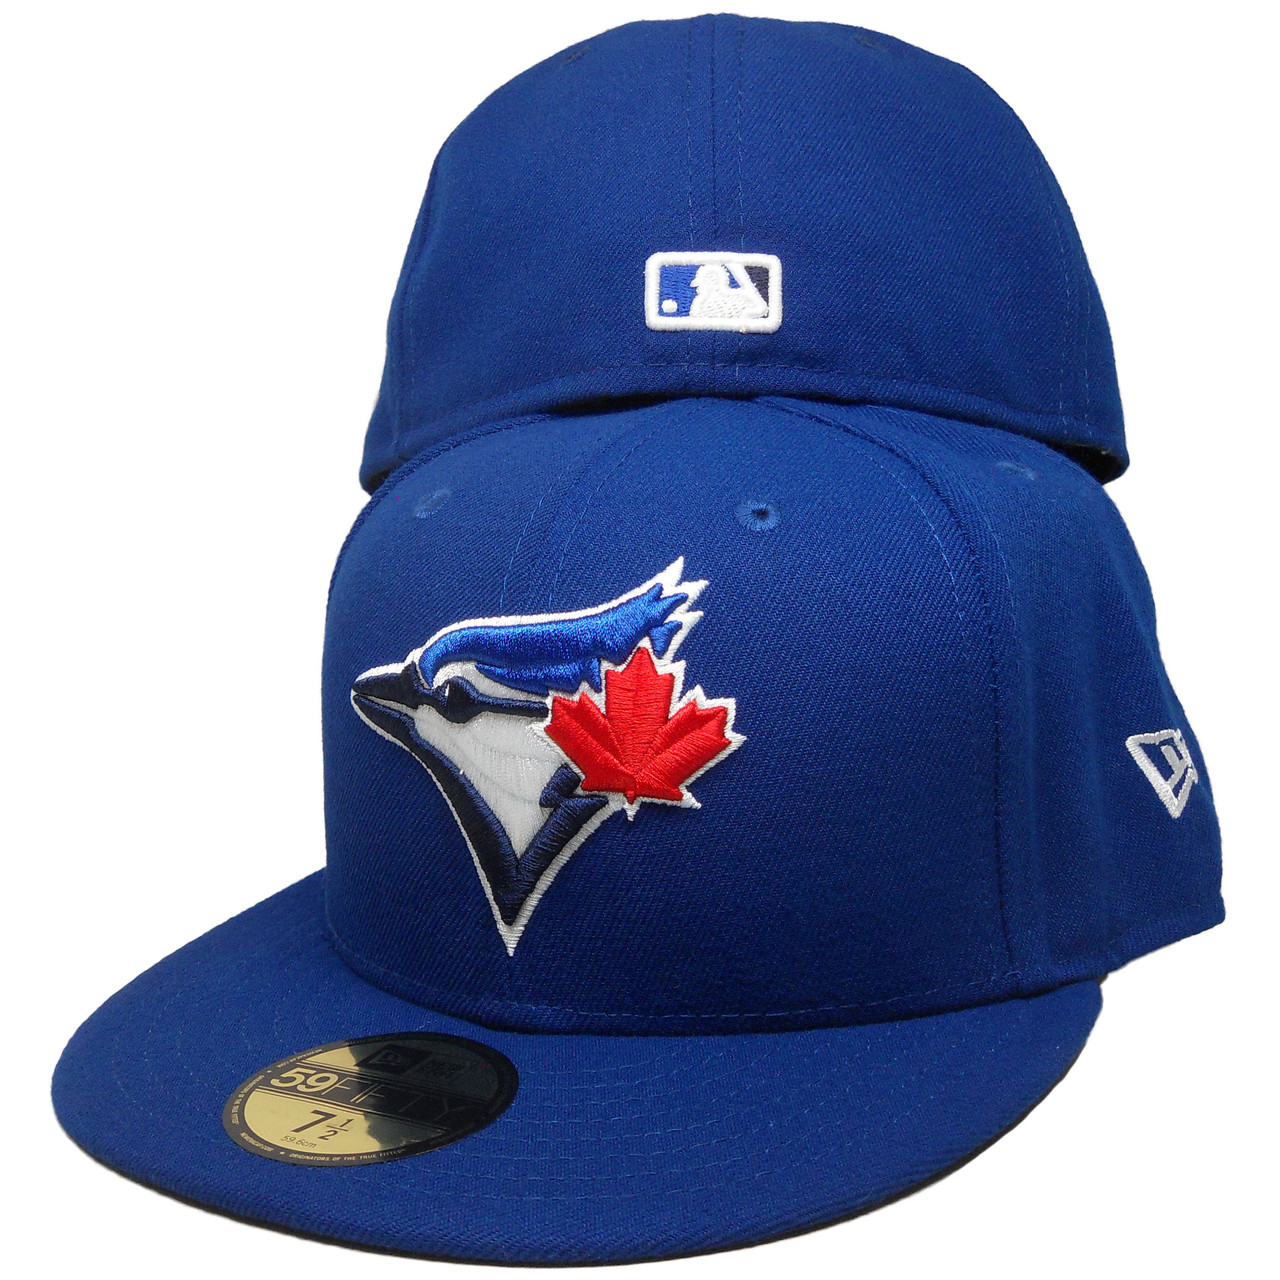 7ab40a69 Toronto Blue Jays New Era Onfield Official Fitted Hat - Bright Royal,  White, Red - ECapsUnlimited.com